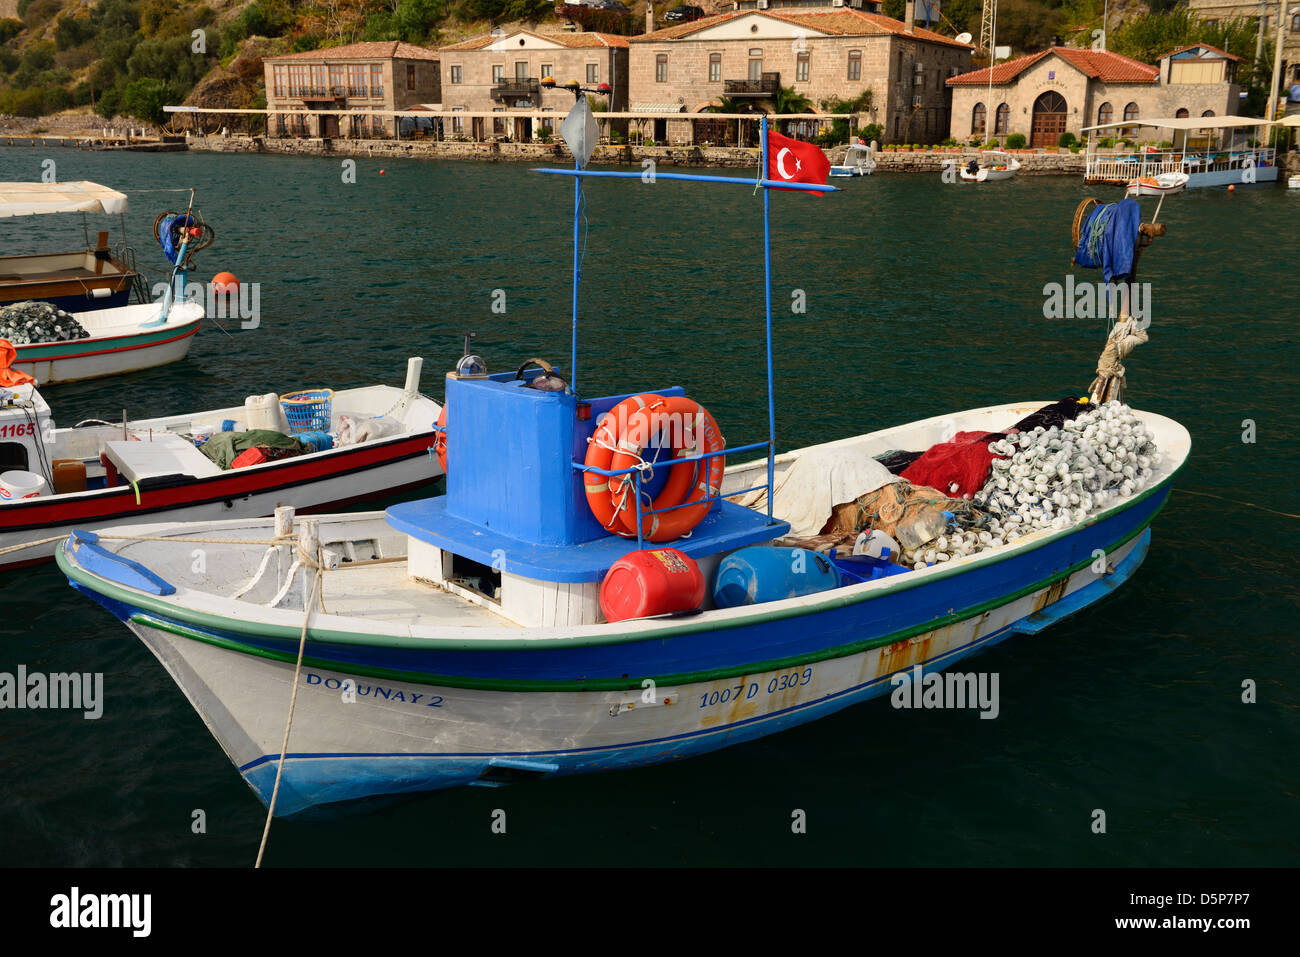 Fishing boats and hotels in the picturesque hamlet of Assos Iskele or Behram Turkey on the Aegean Sea - Stock Image